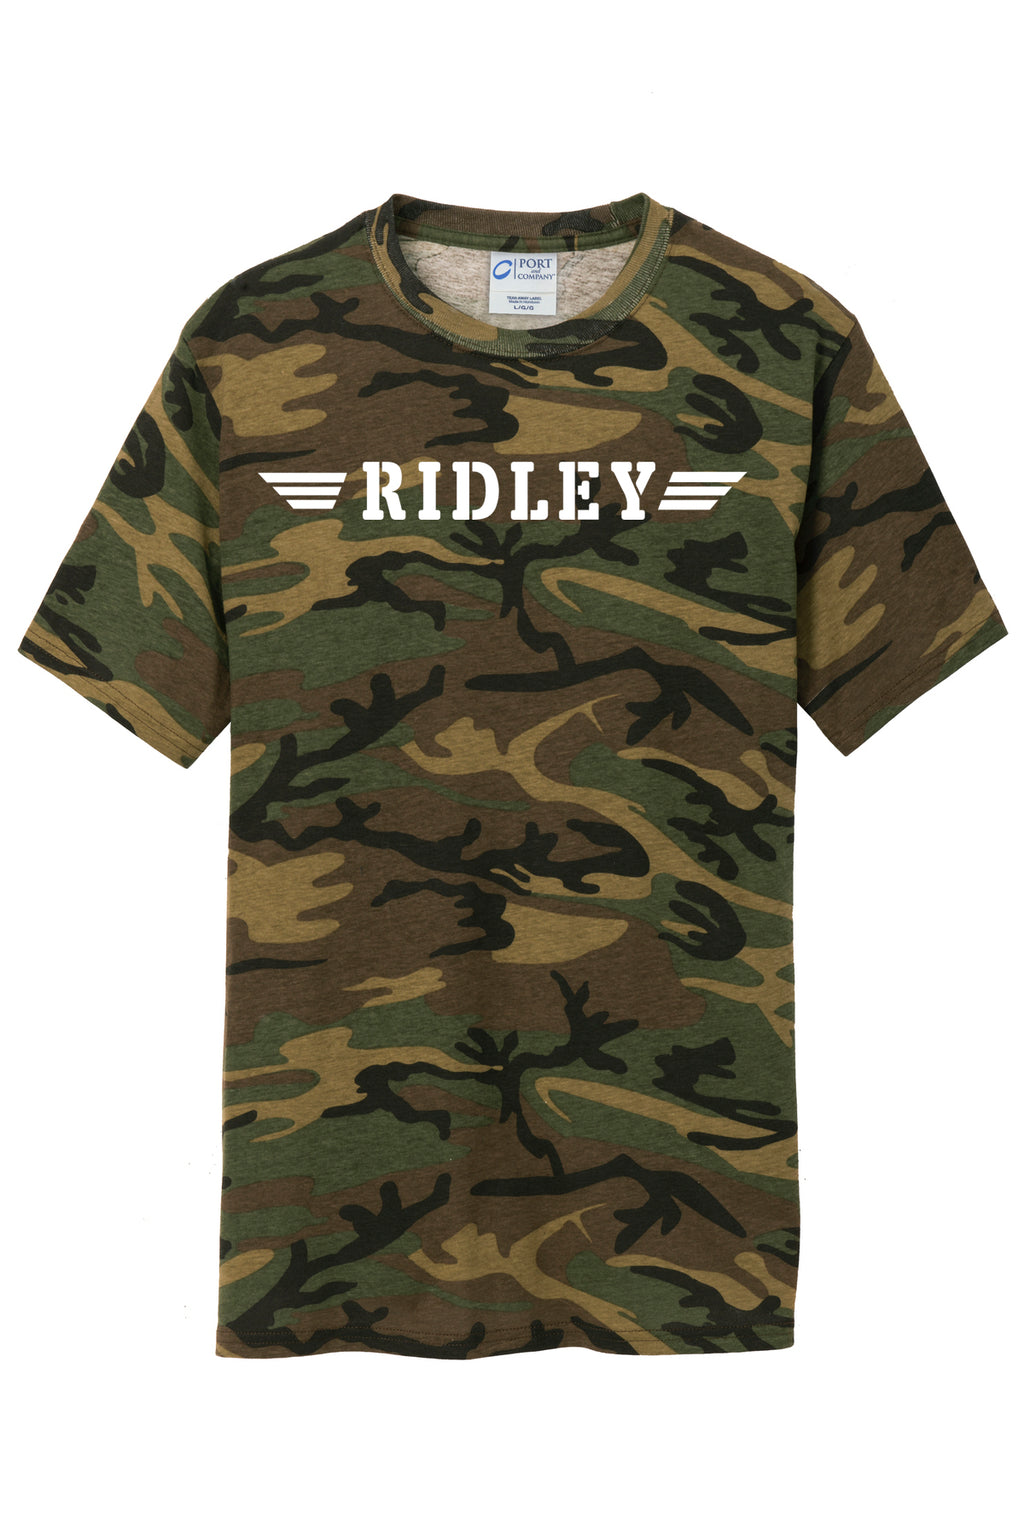 Adult Camo Ridley T-Shirt